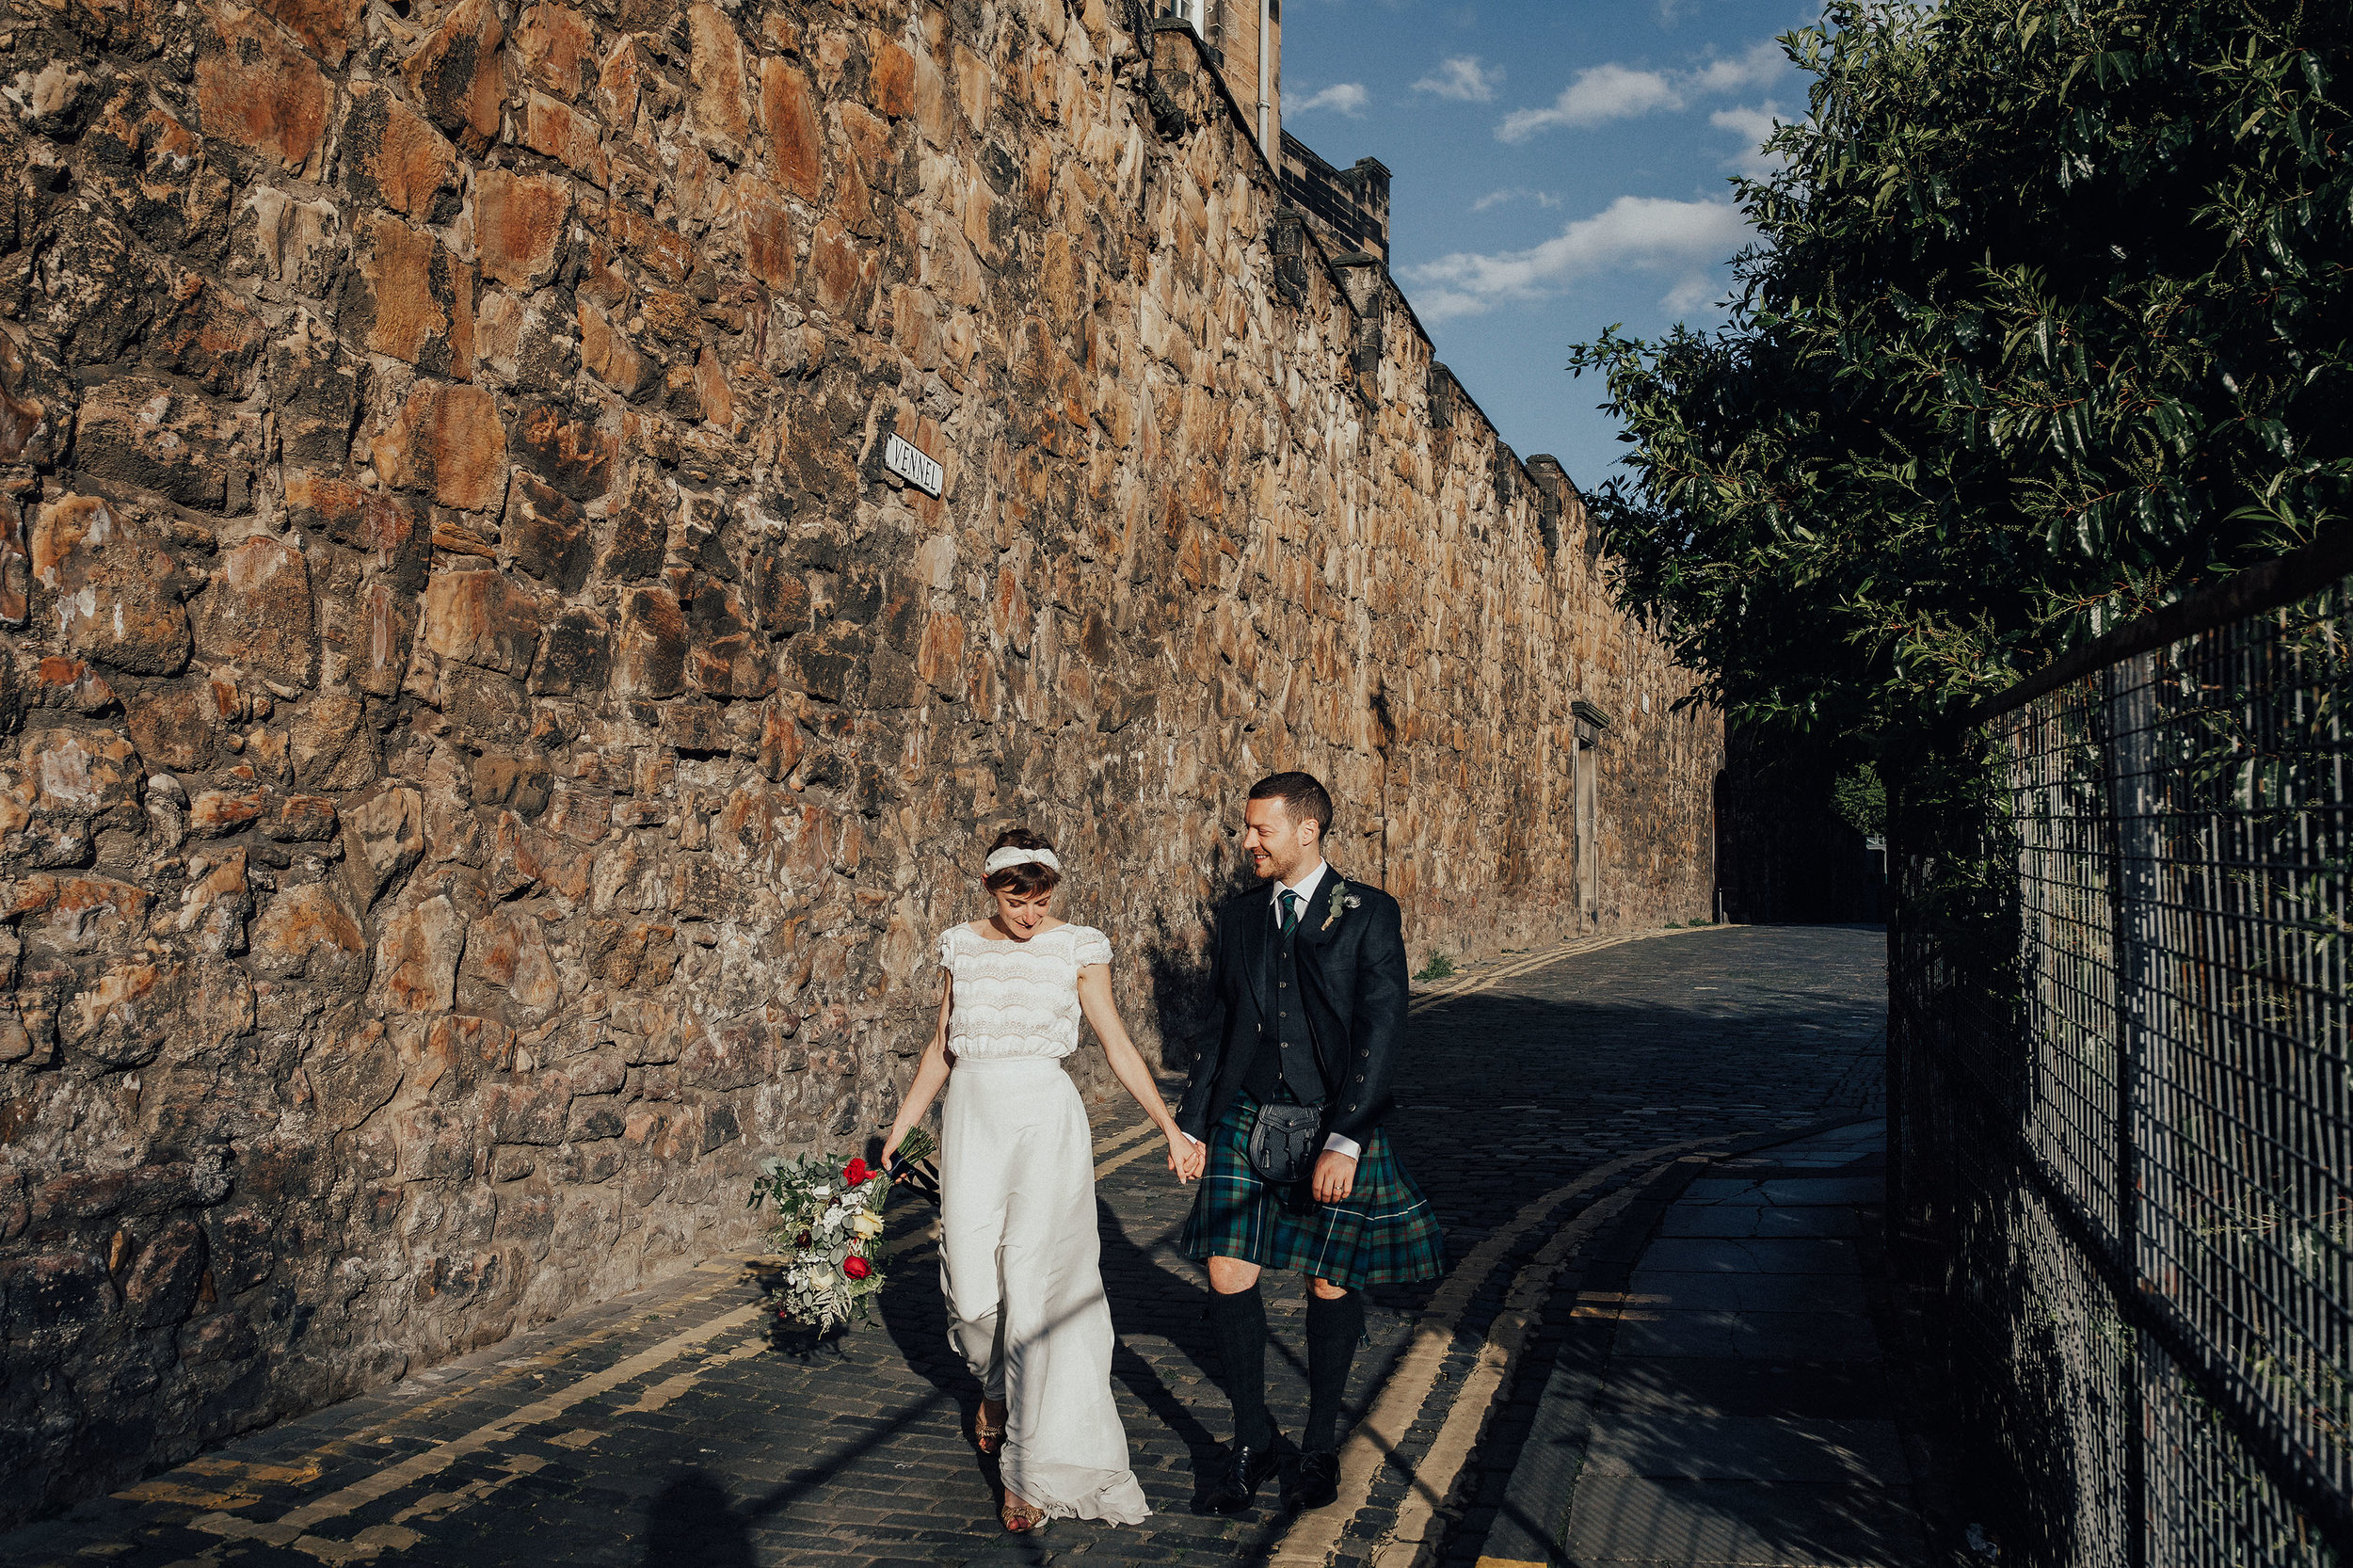 TIMBERYARD_EDINBURGH_WEDDING_PJ_PHILLIPS_PHOTOGRAPHY_185.jpg